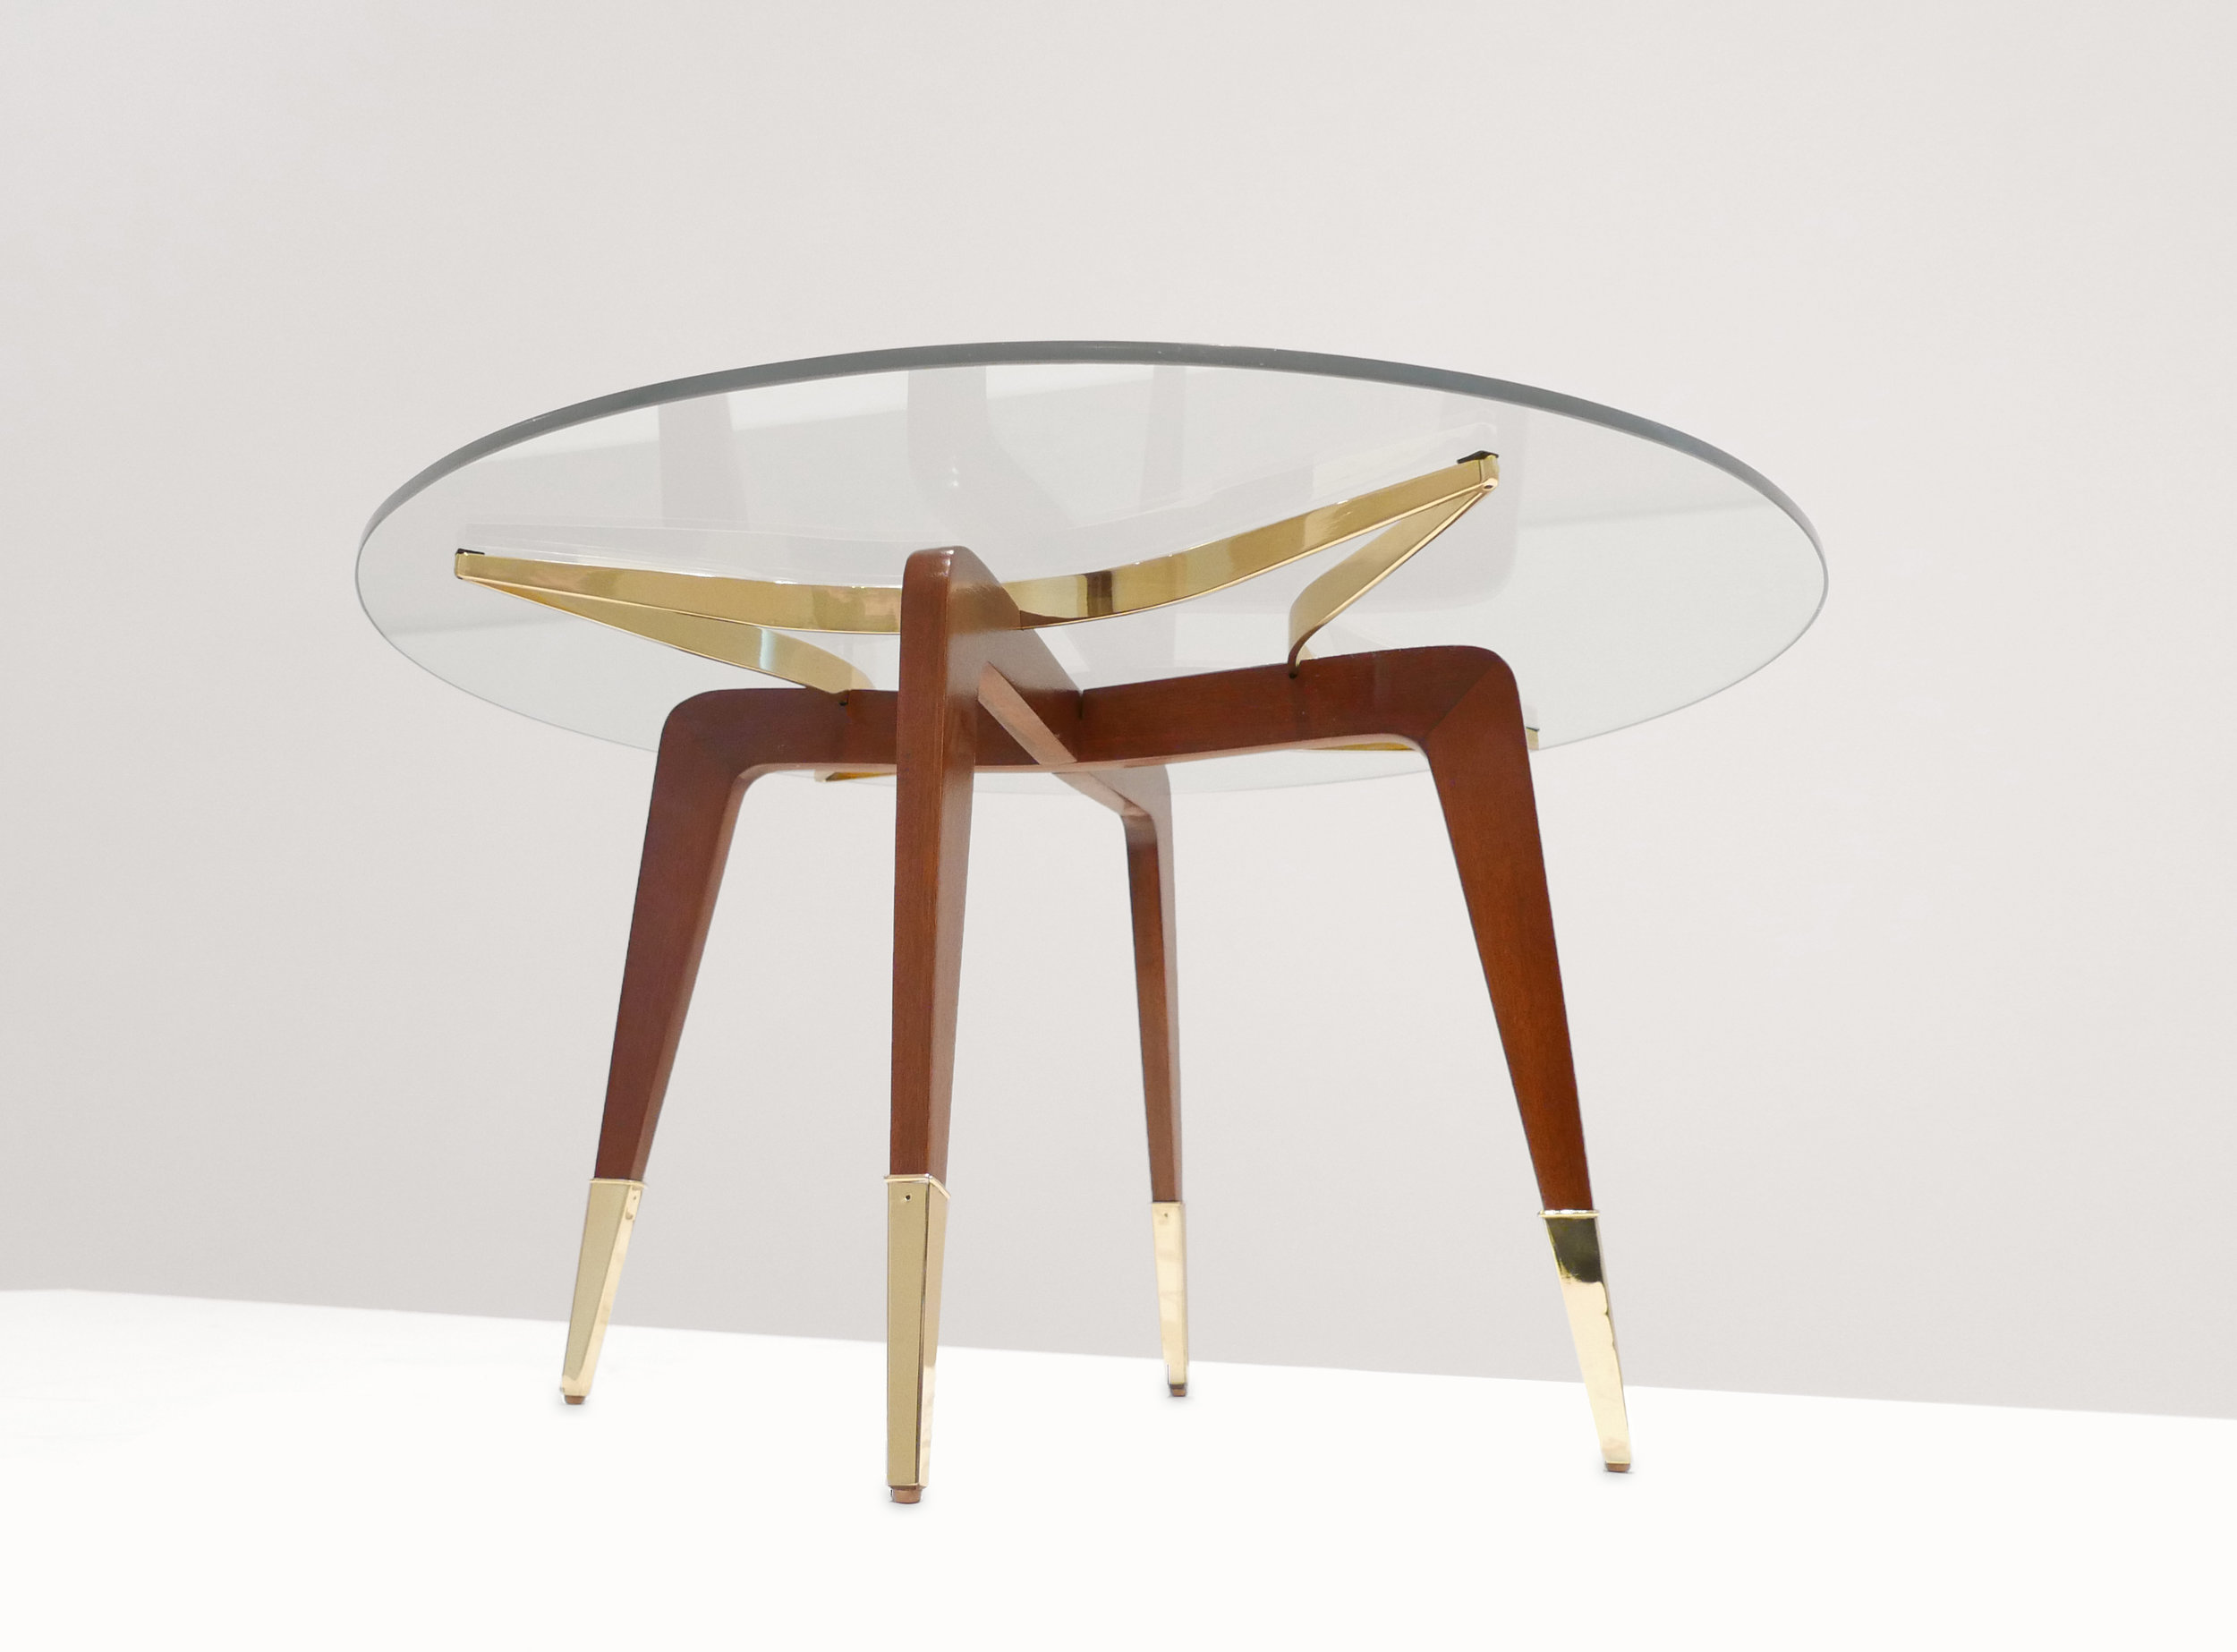 Paolo Buffa, Italian Mid-Century Coffee Table, c. 1950 - 1959, Brass, Wood, Glass, 18 H x 29.5 W inches_5.jpg